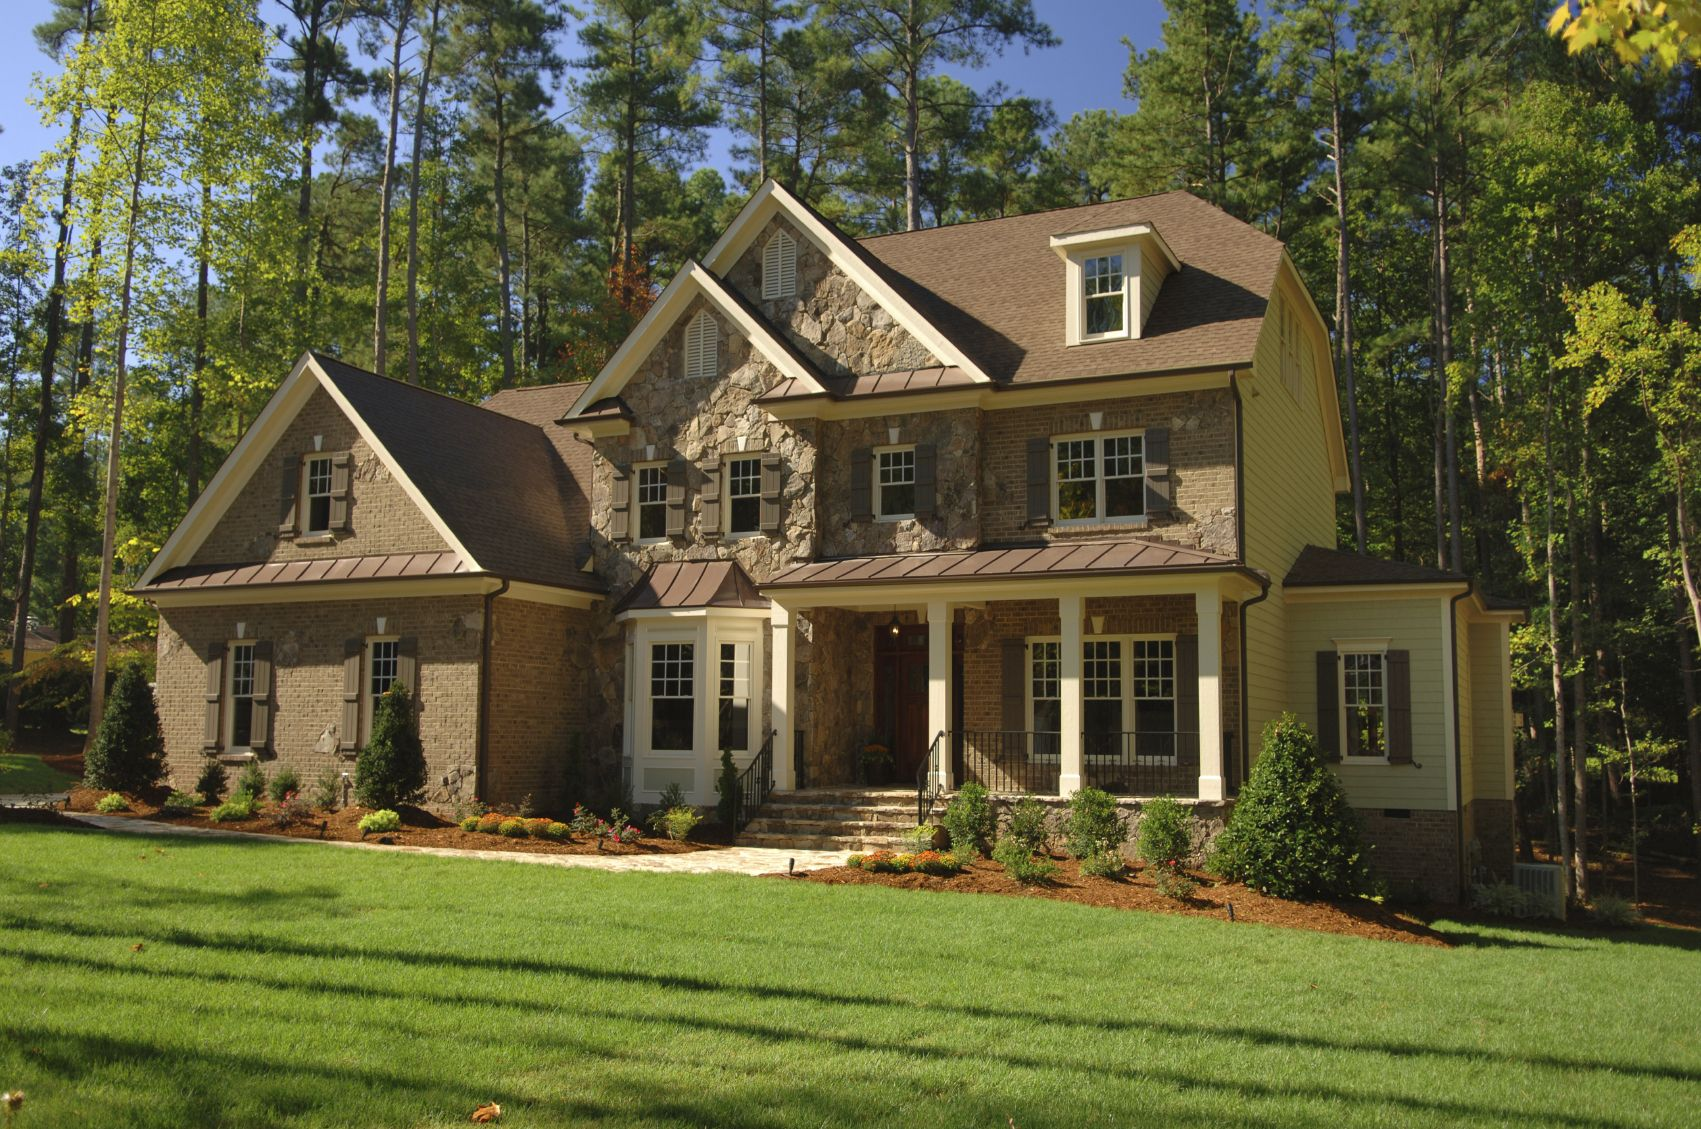 Texas Country Home Plans Photos Of New Homes  East Texas Has Some Beautiful Homes…i'd Be